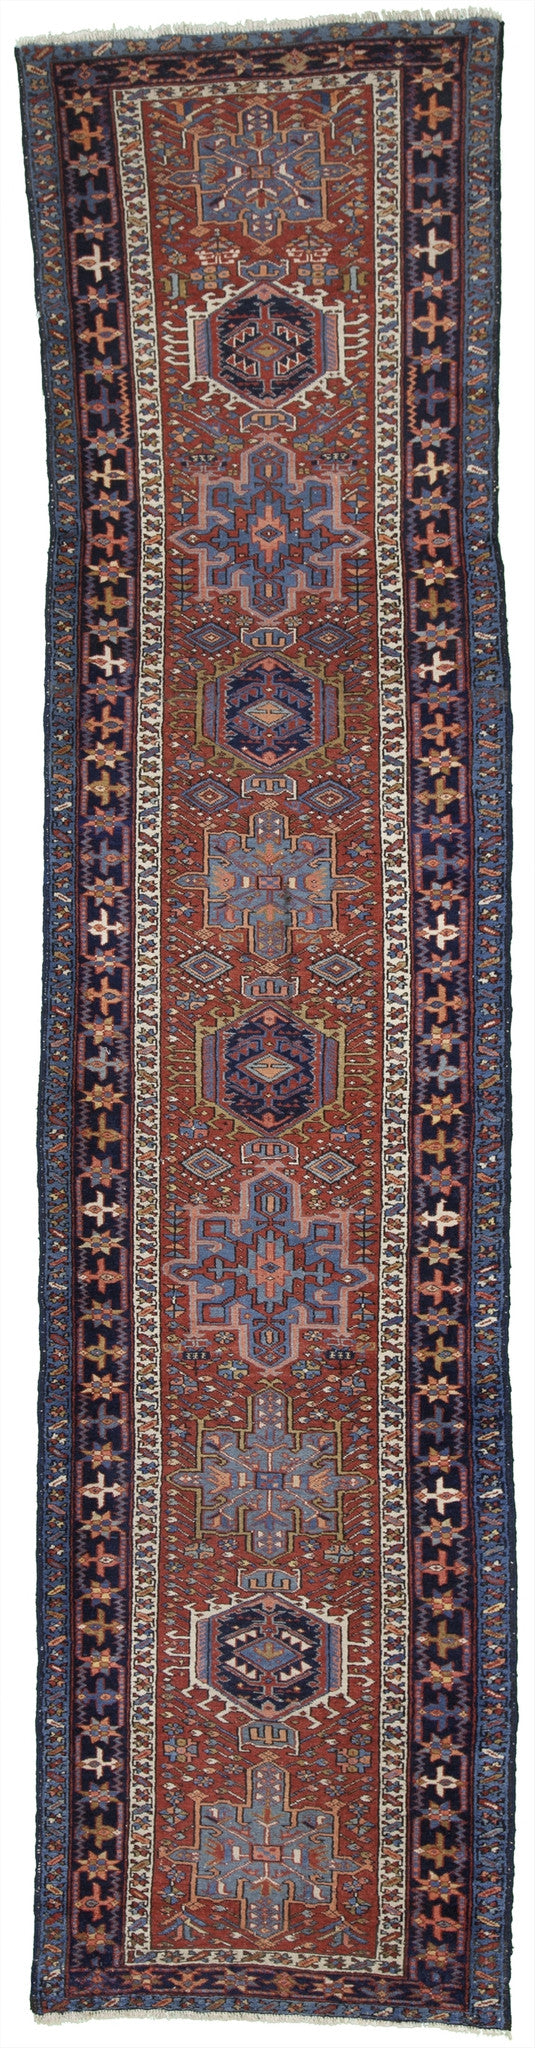 Antique Persian Karajeh Runner Rug               3'x 12'6